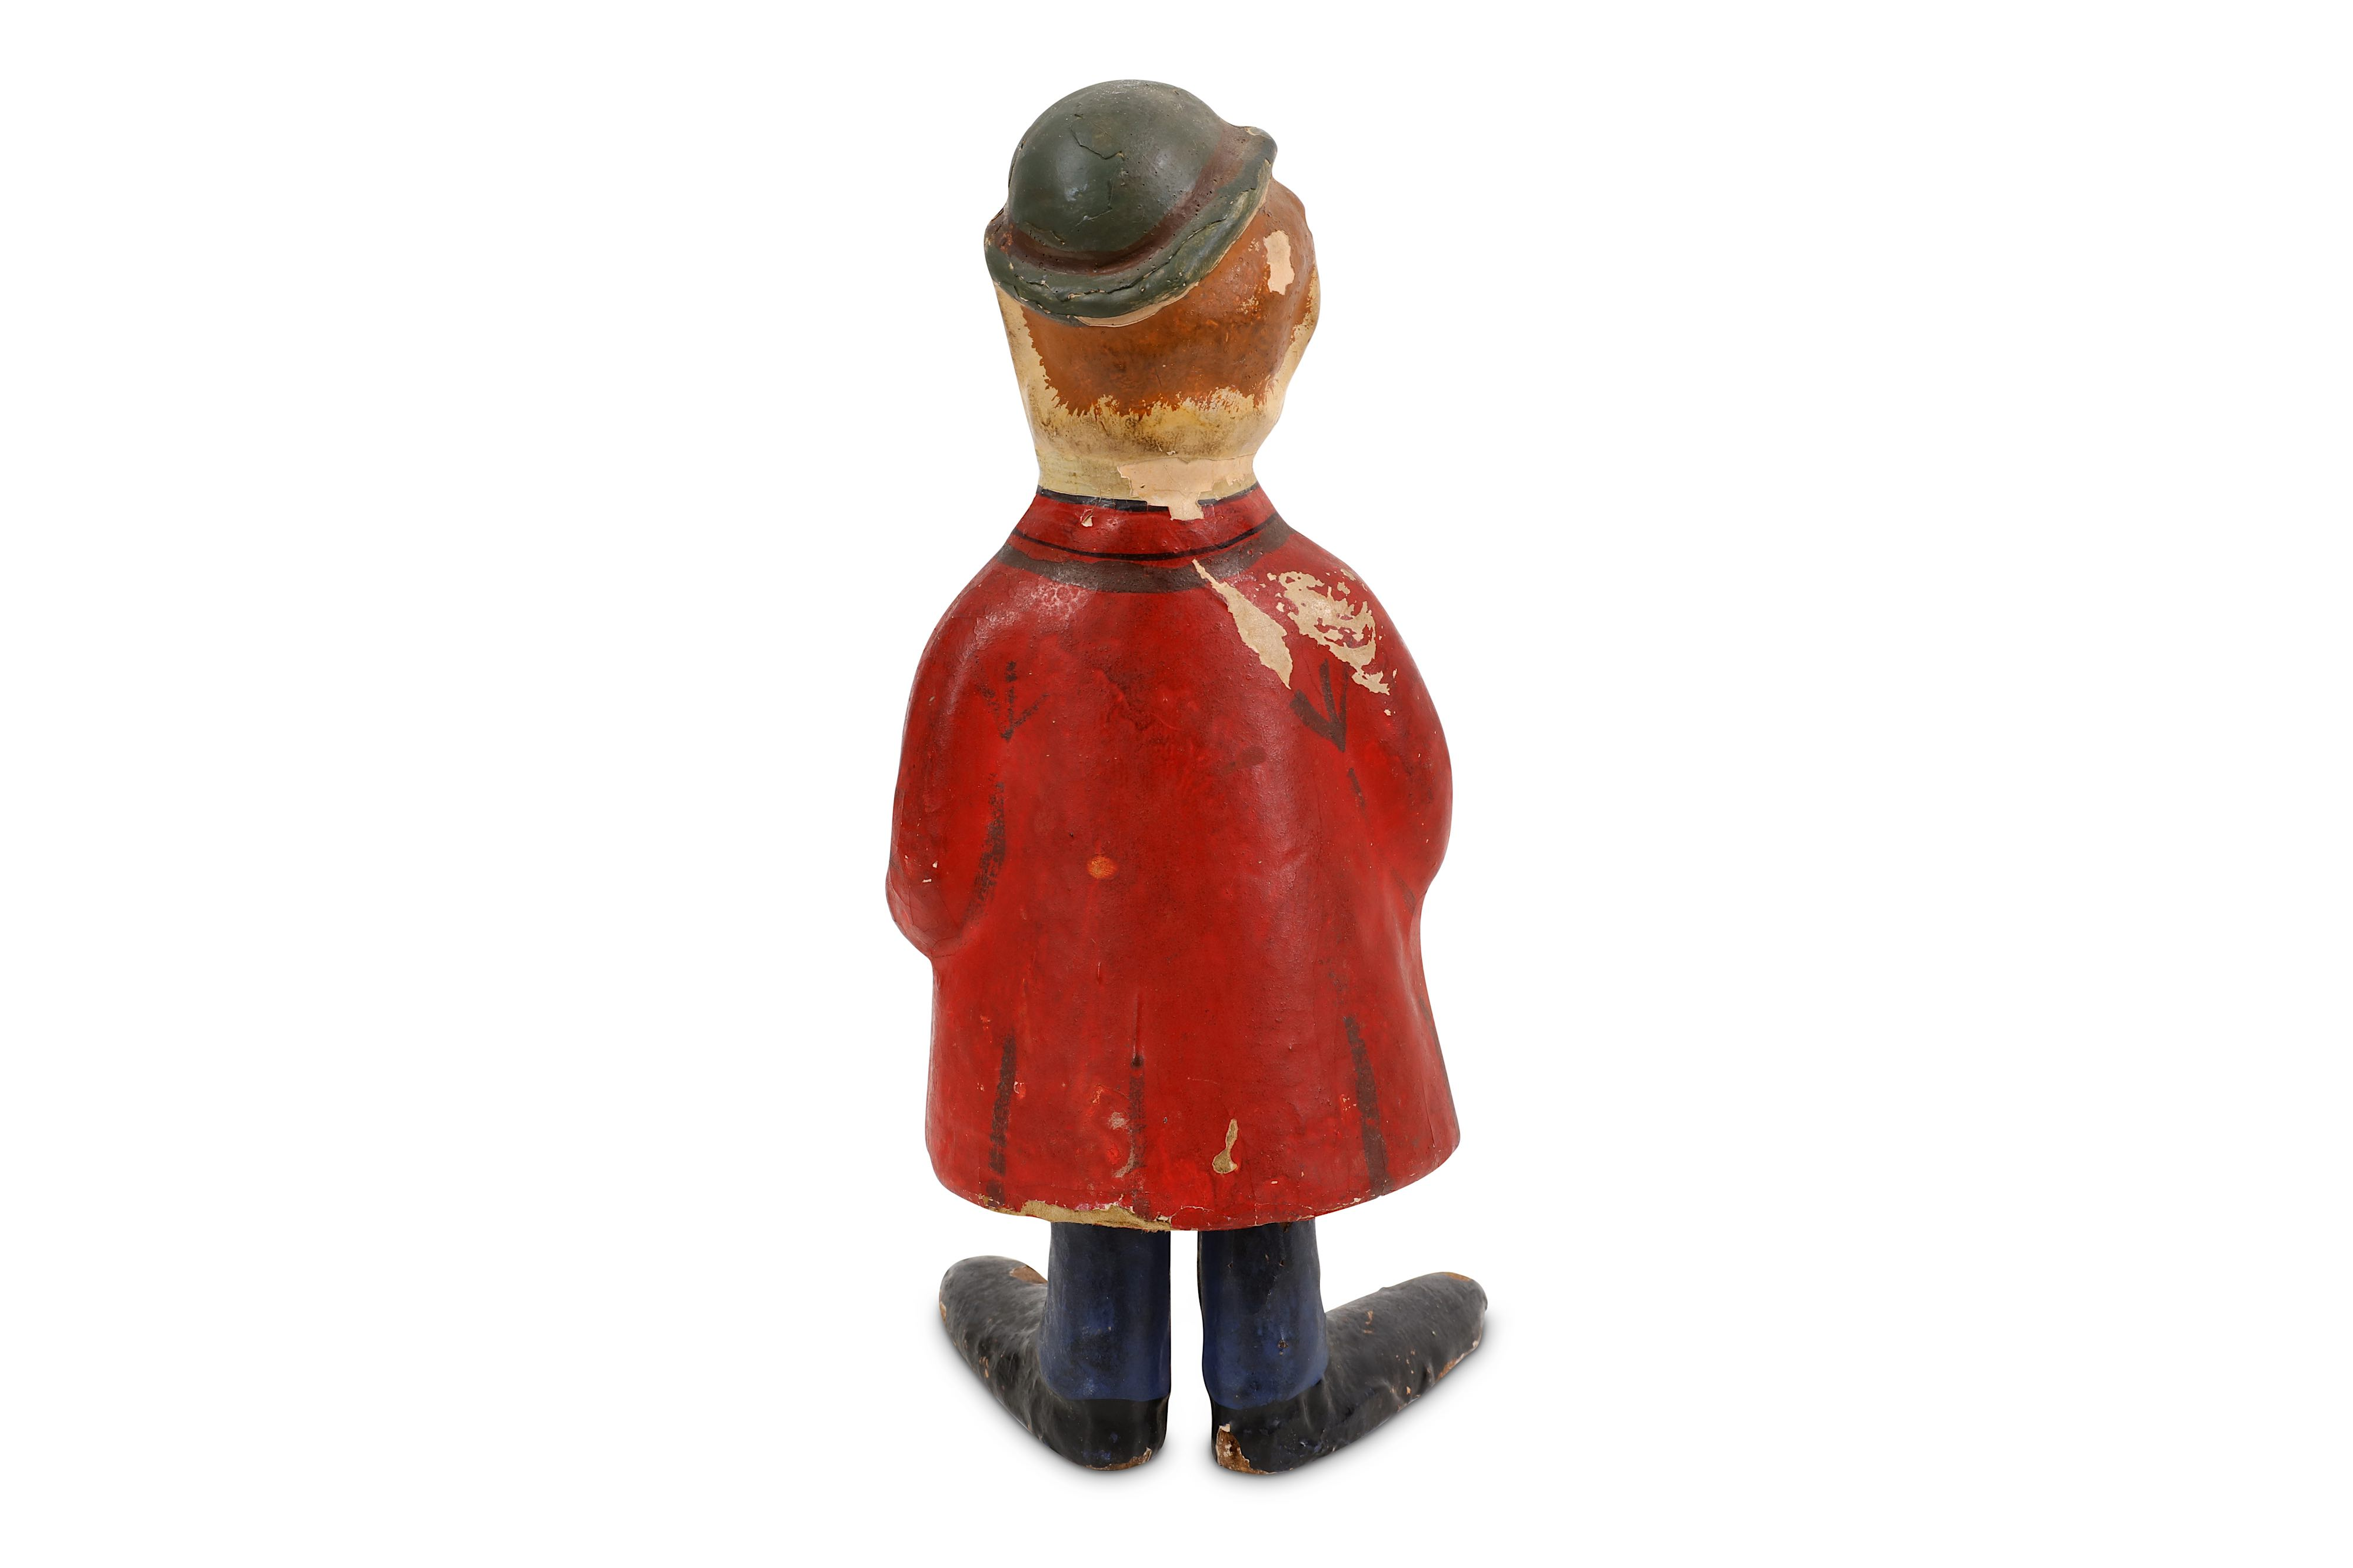 EARLY GERMAN PAPIER MACHER SPRING LOADED FIGURE DEPICTING OLIVER HARDY - Image 3 of 3